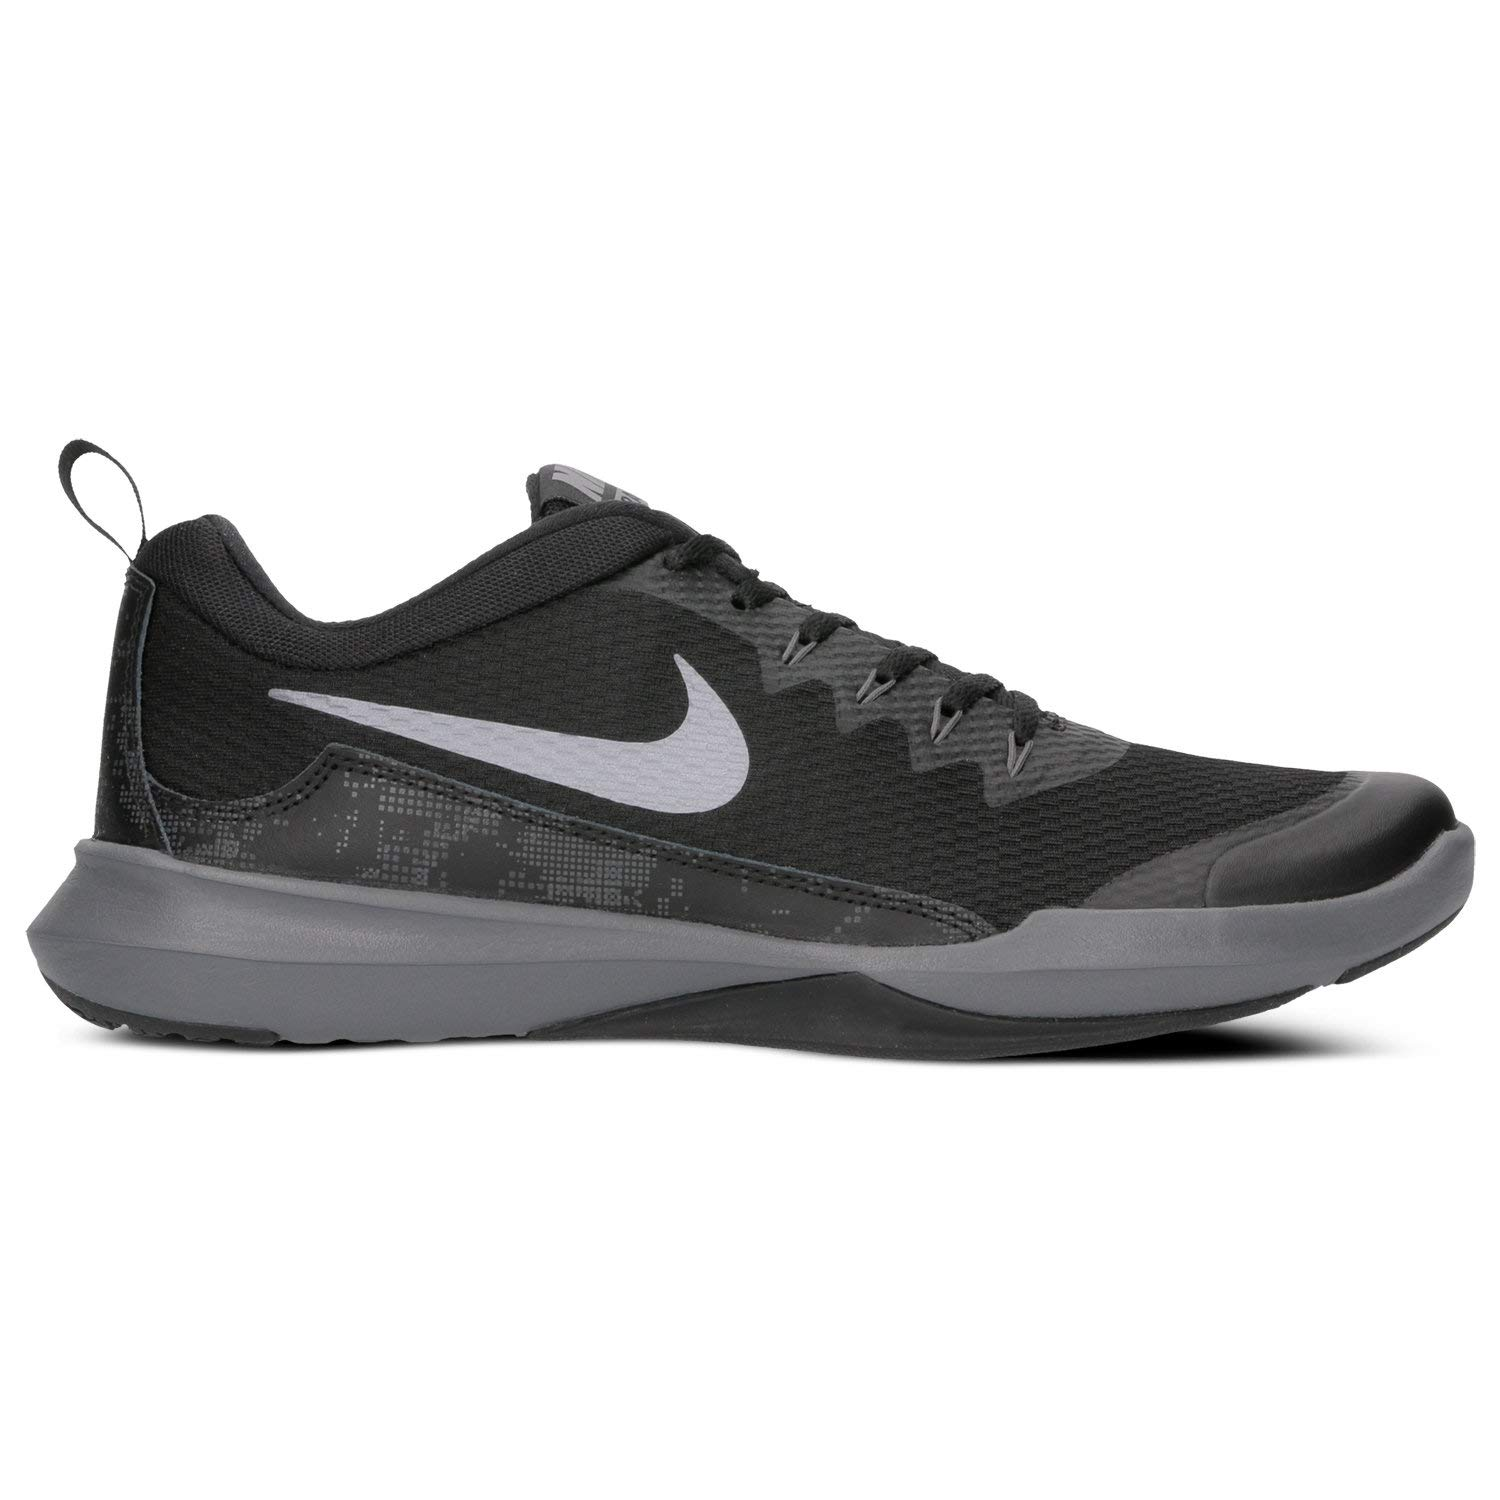 8ba136c56ff3 Nike Men s Legend Trainer Multisport Training Shoes  Buy Online at Low  Prices in India - Amazon.in